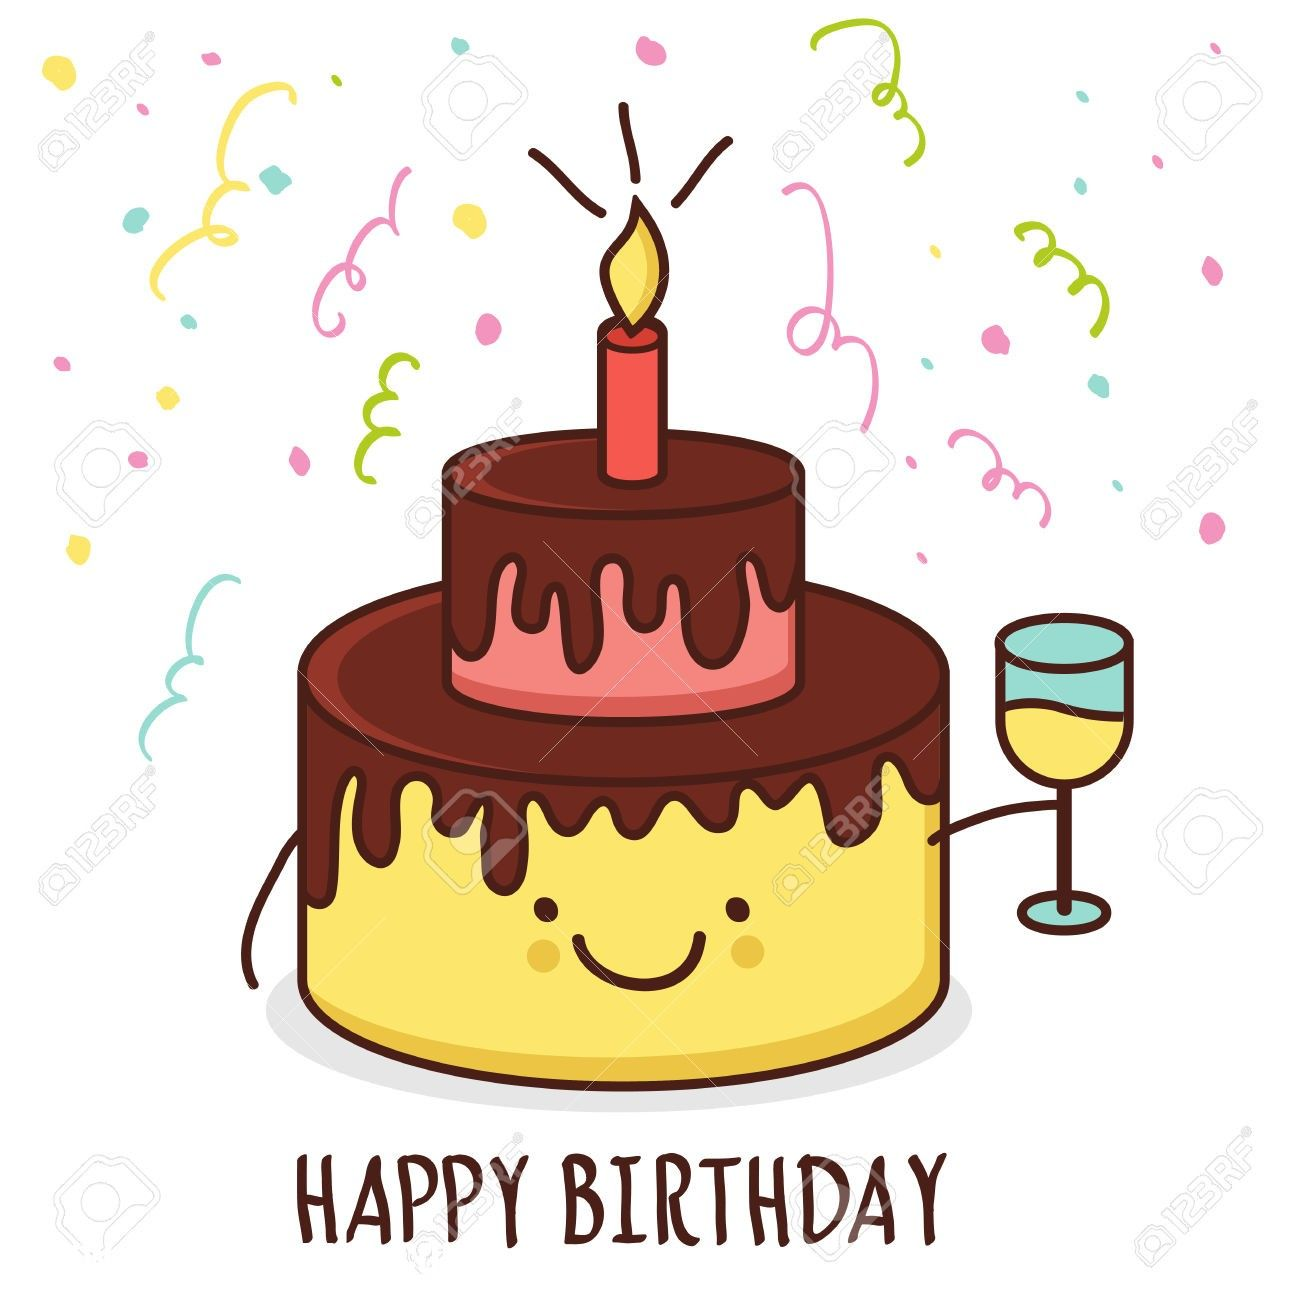 Cartoon Happy Birthday Cake Pics Auto Soletcshat Image Otomotif Cartoon Birthday Cake Happy Birthday Greeting Card Birthday